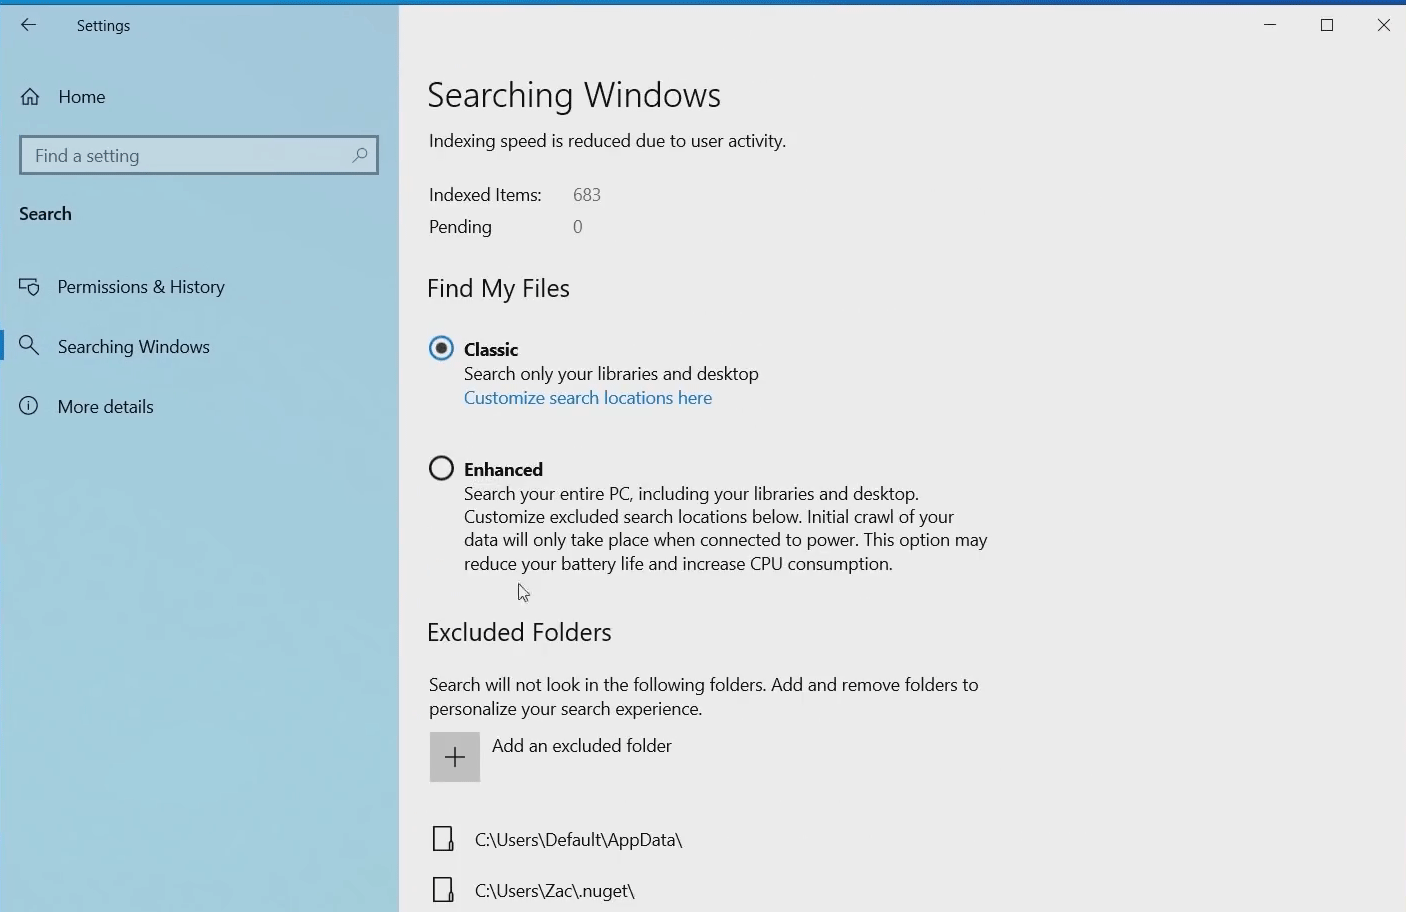 searching-and-indexing-files-windows-10-enhanced